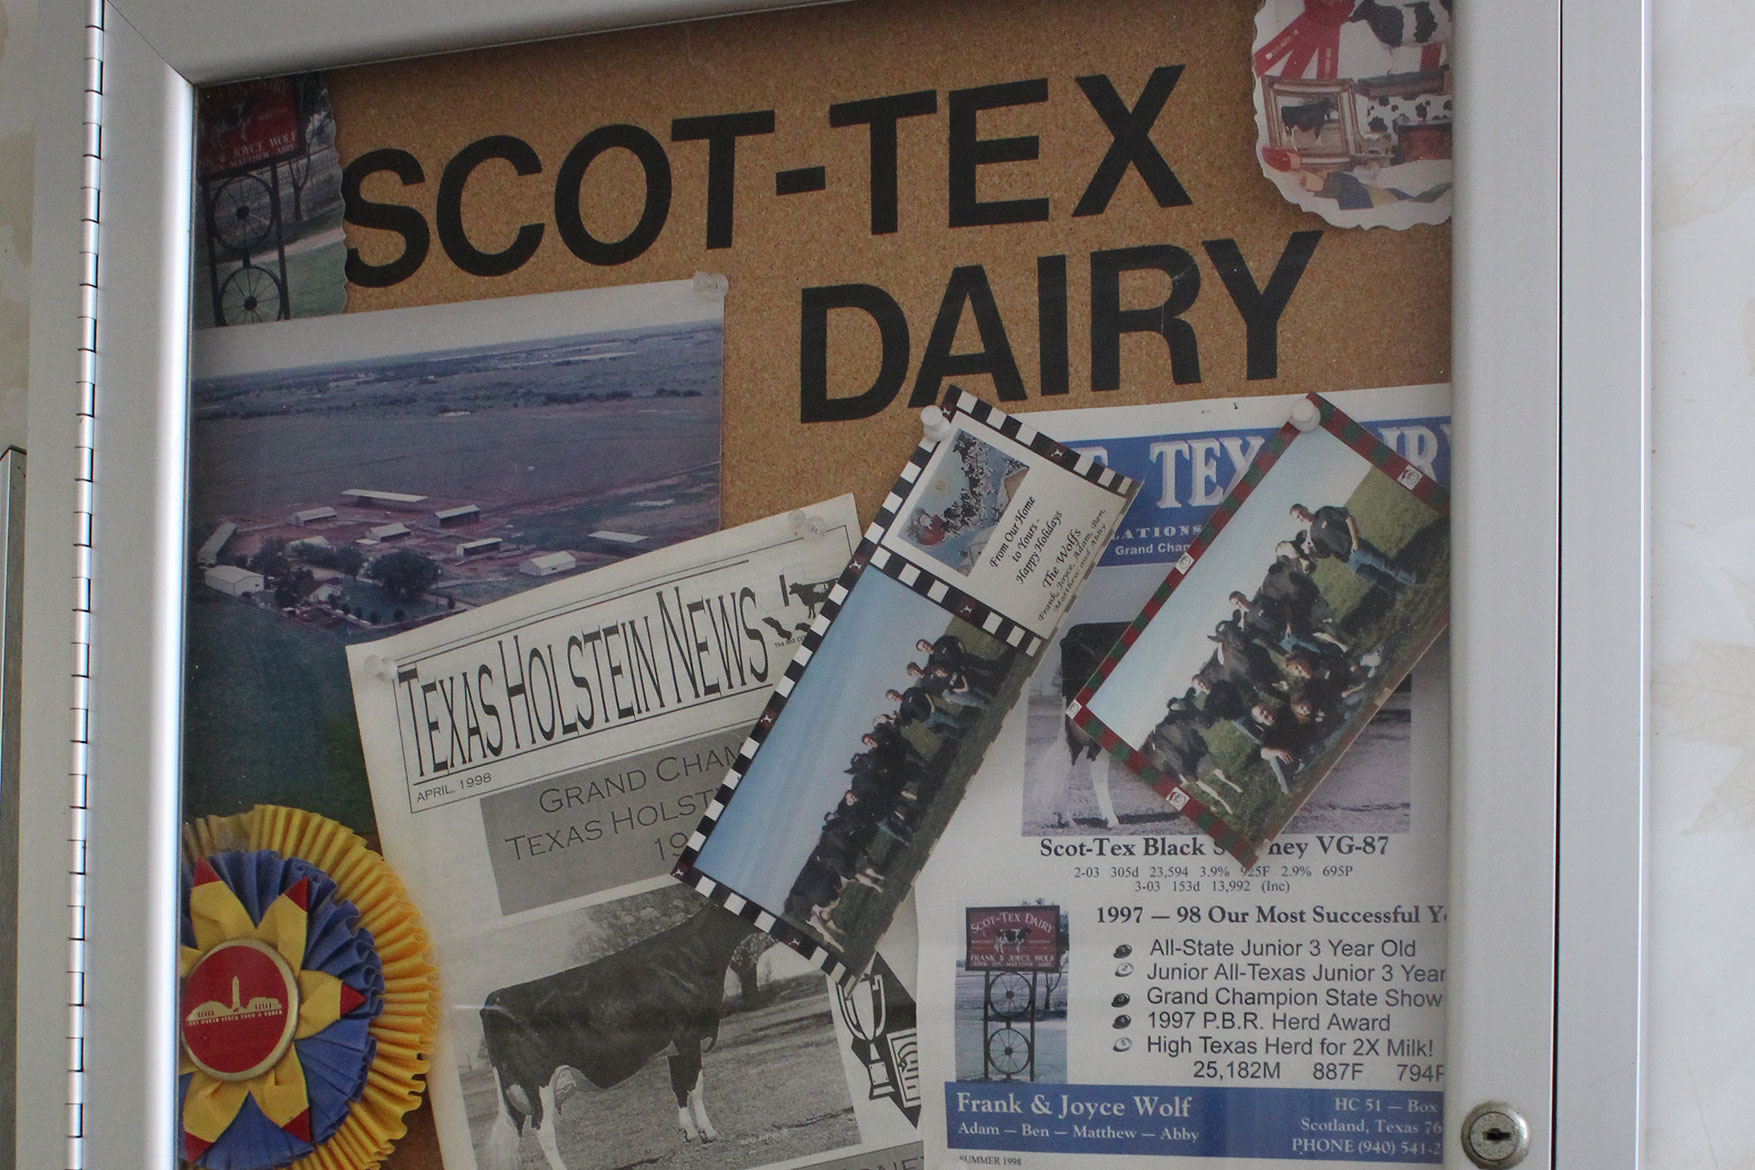 Memories of shows attended and won by cows from Scot-Tex Dairy.